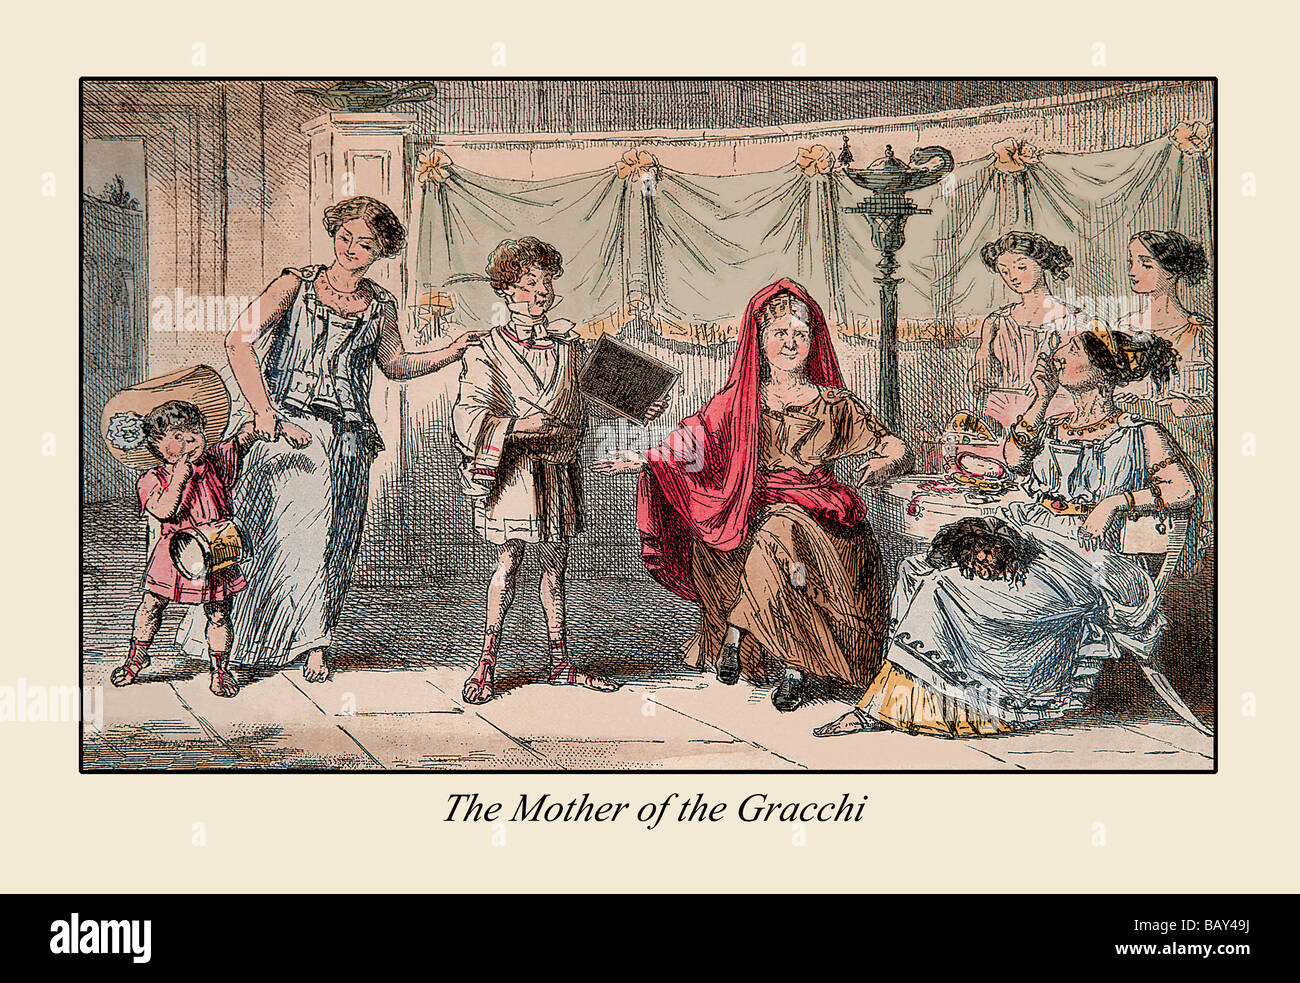 The Mother of the Gracchi - Stock Image